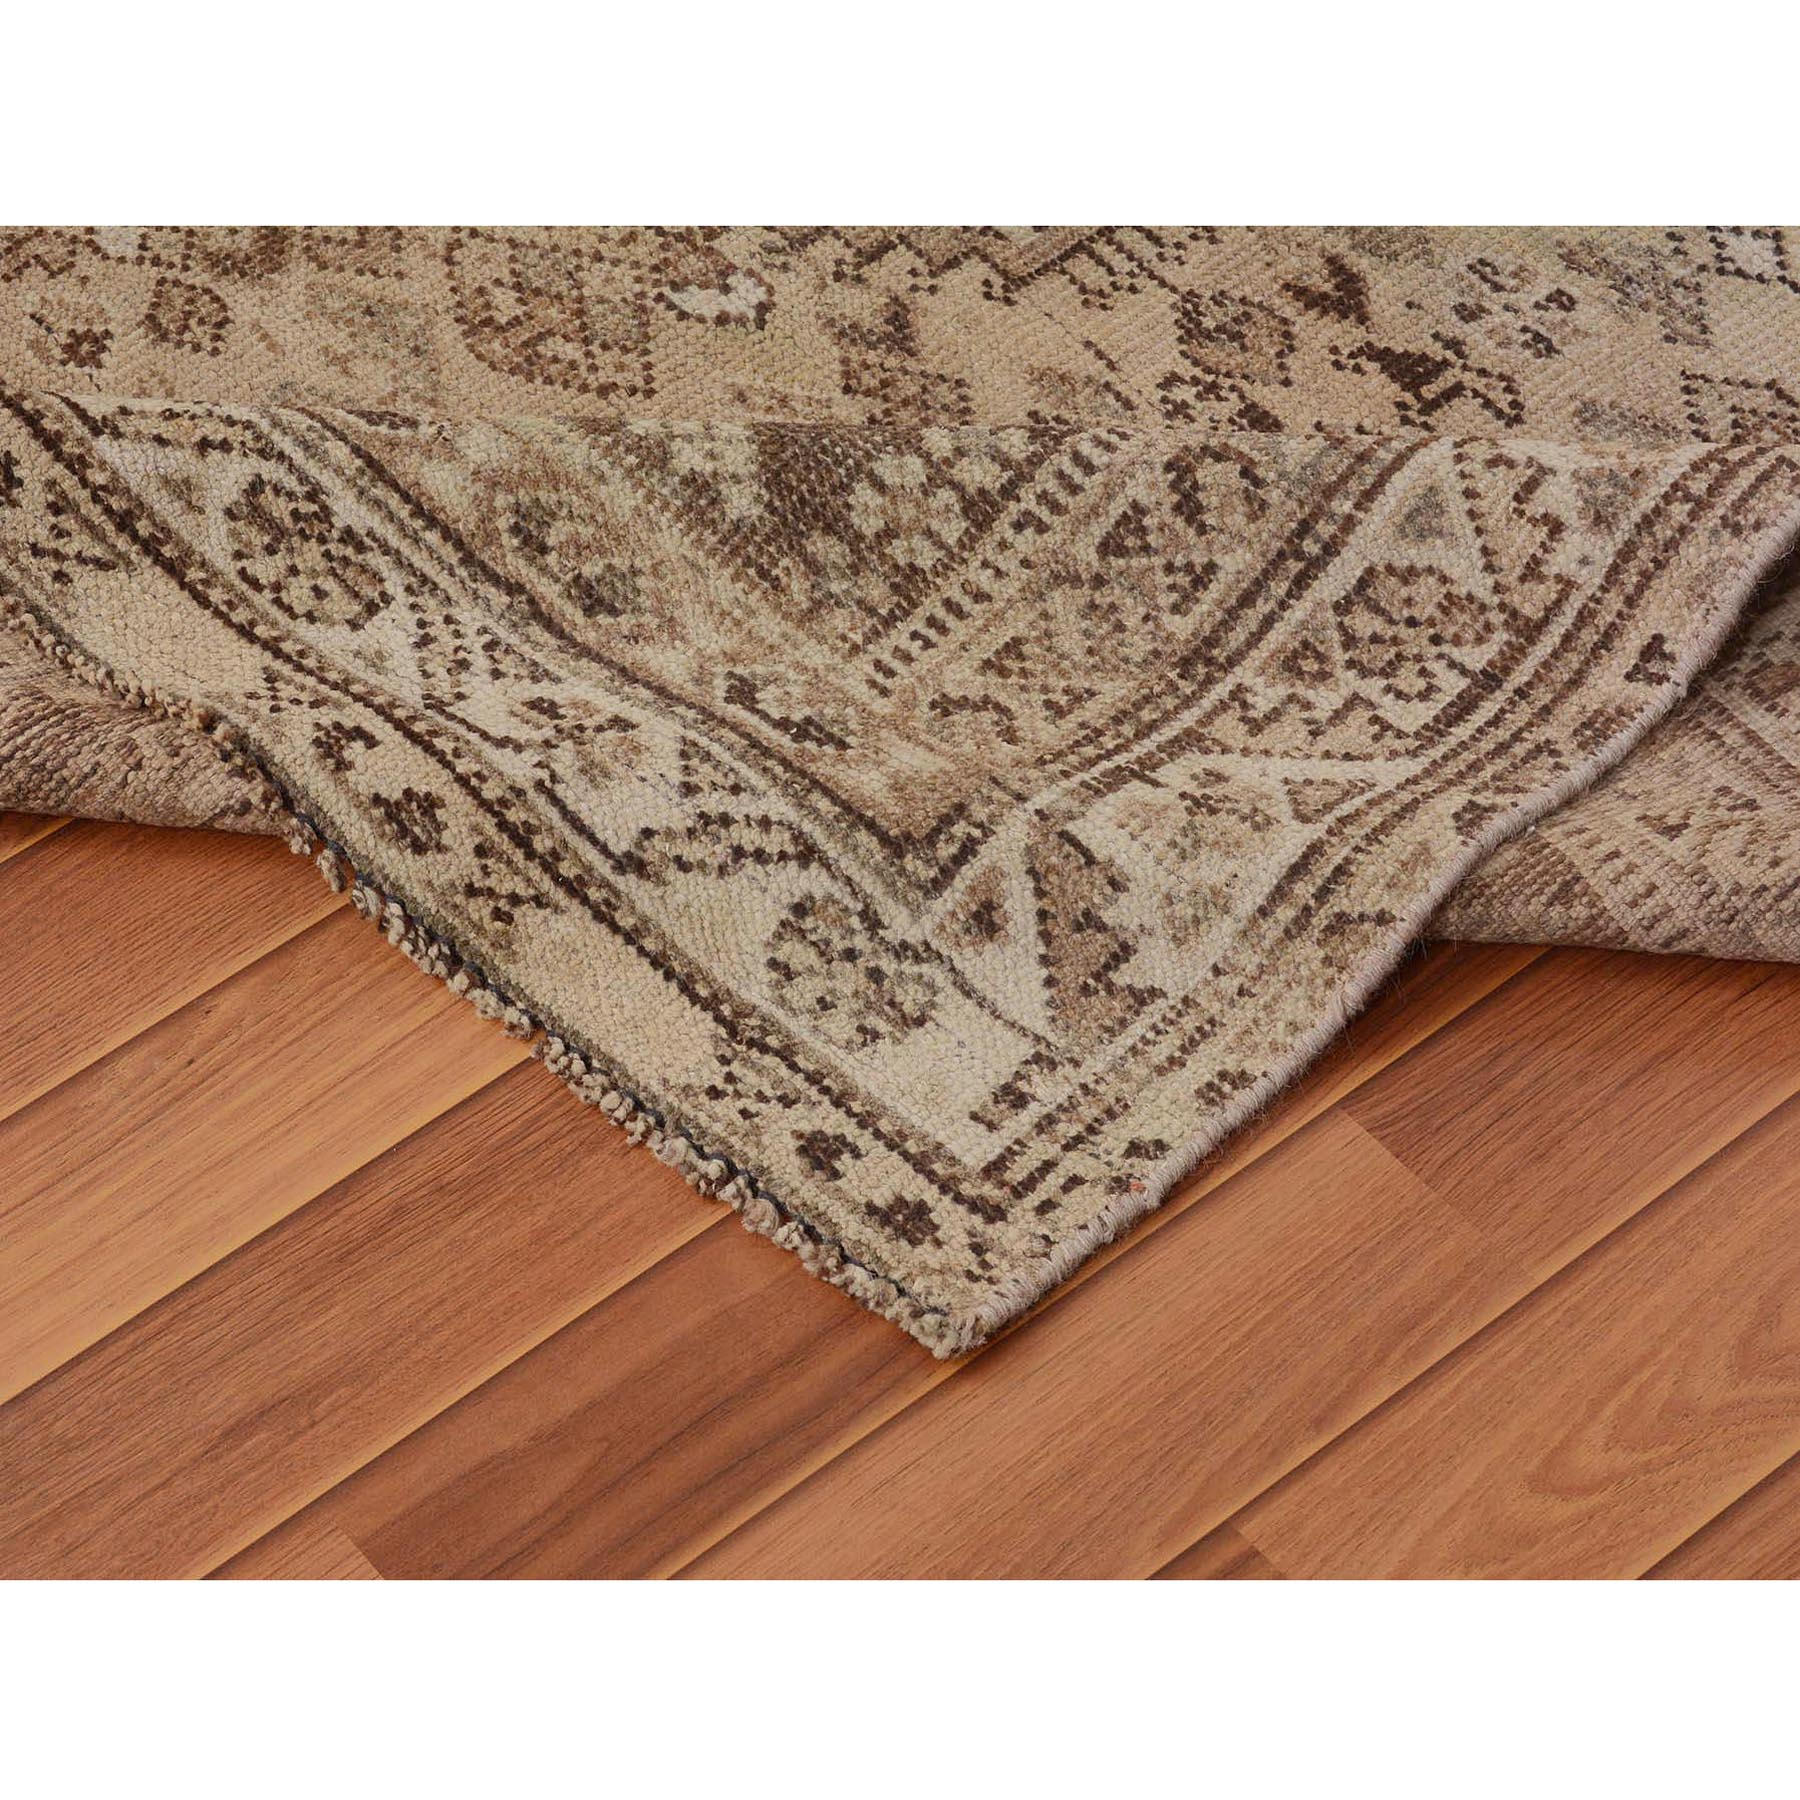 6-8 x7-8  Earth Tones Vintage and Worn Down Squarish Persian Shiraz Pure Wool Hand Knotted Oriental Rug